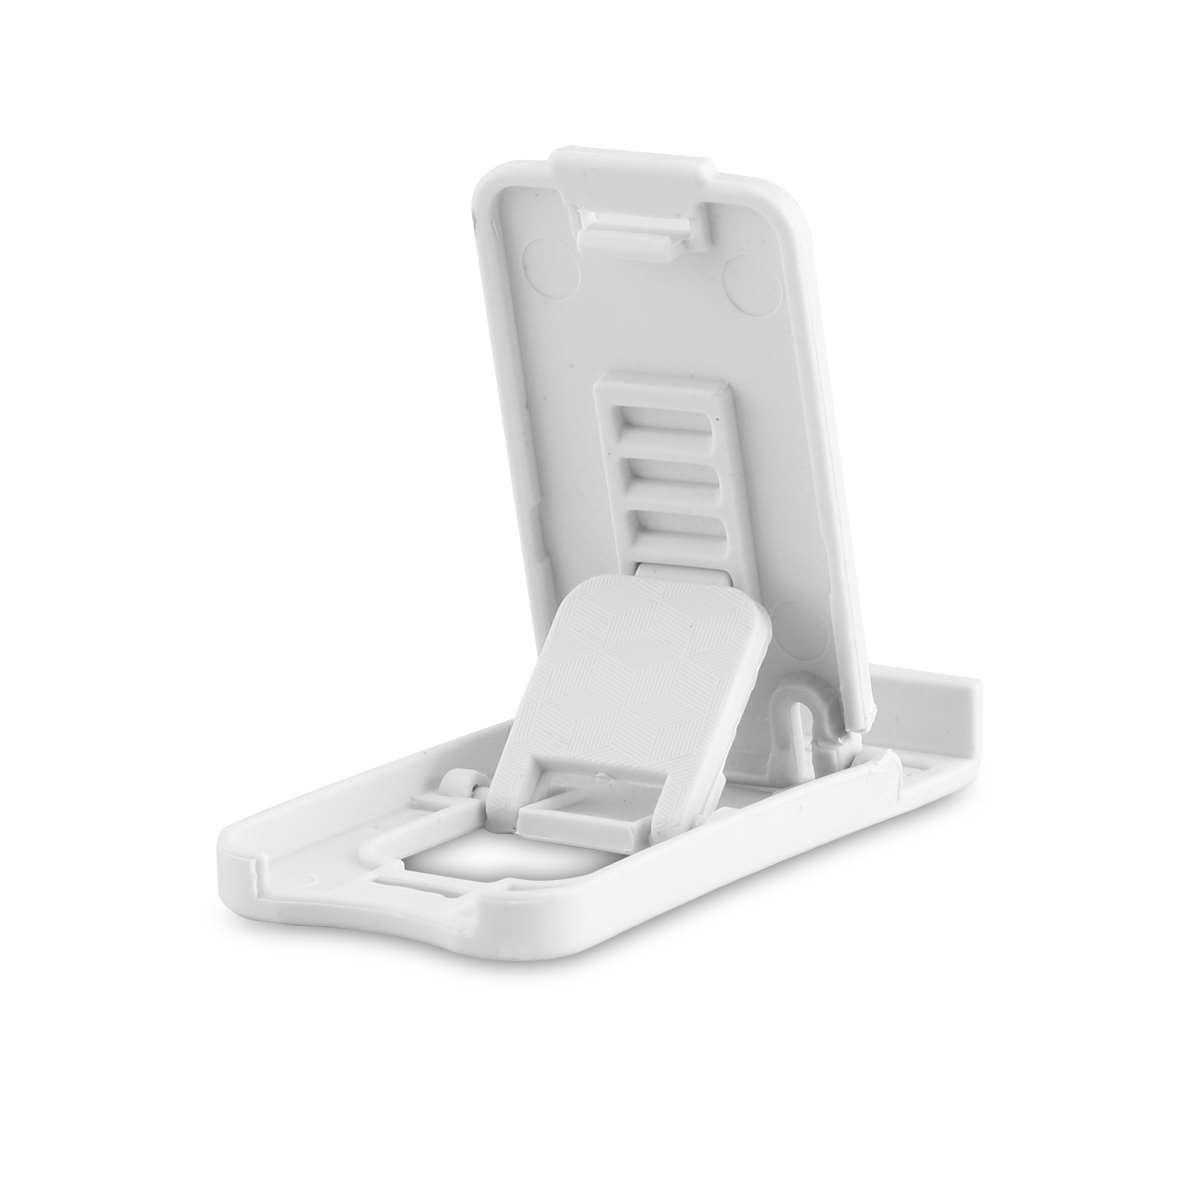 Phone Holder Cute Multi-function Adjustable Mobile Phone Holder Stand Lovely Portable Holders Stable Protective fold for iphone